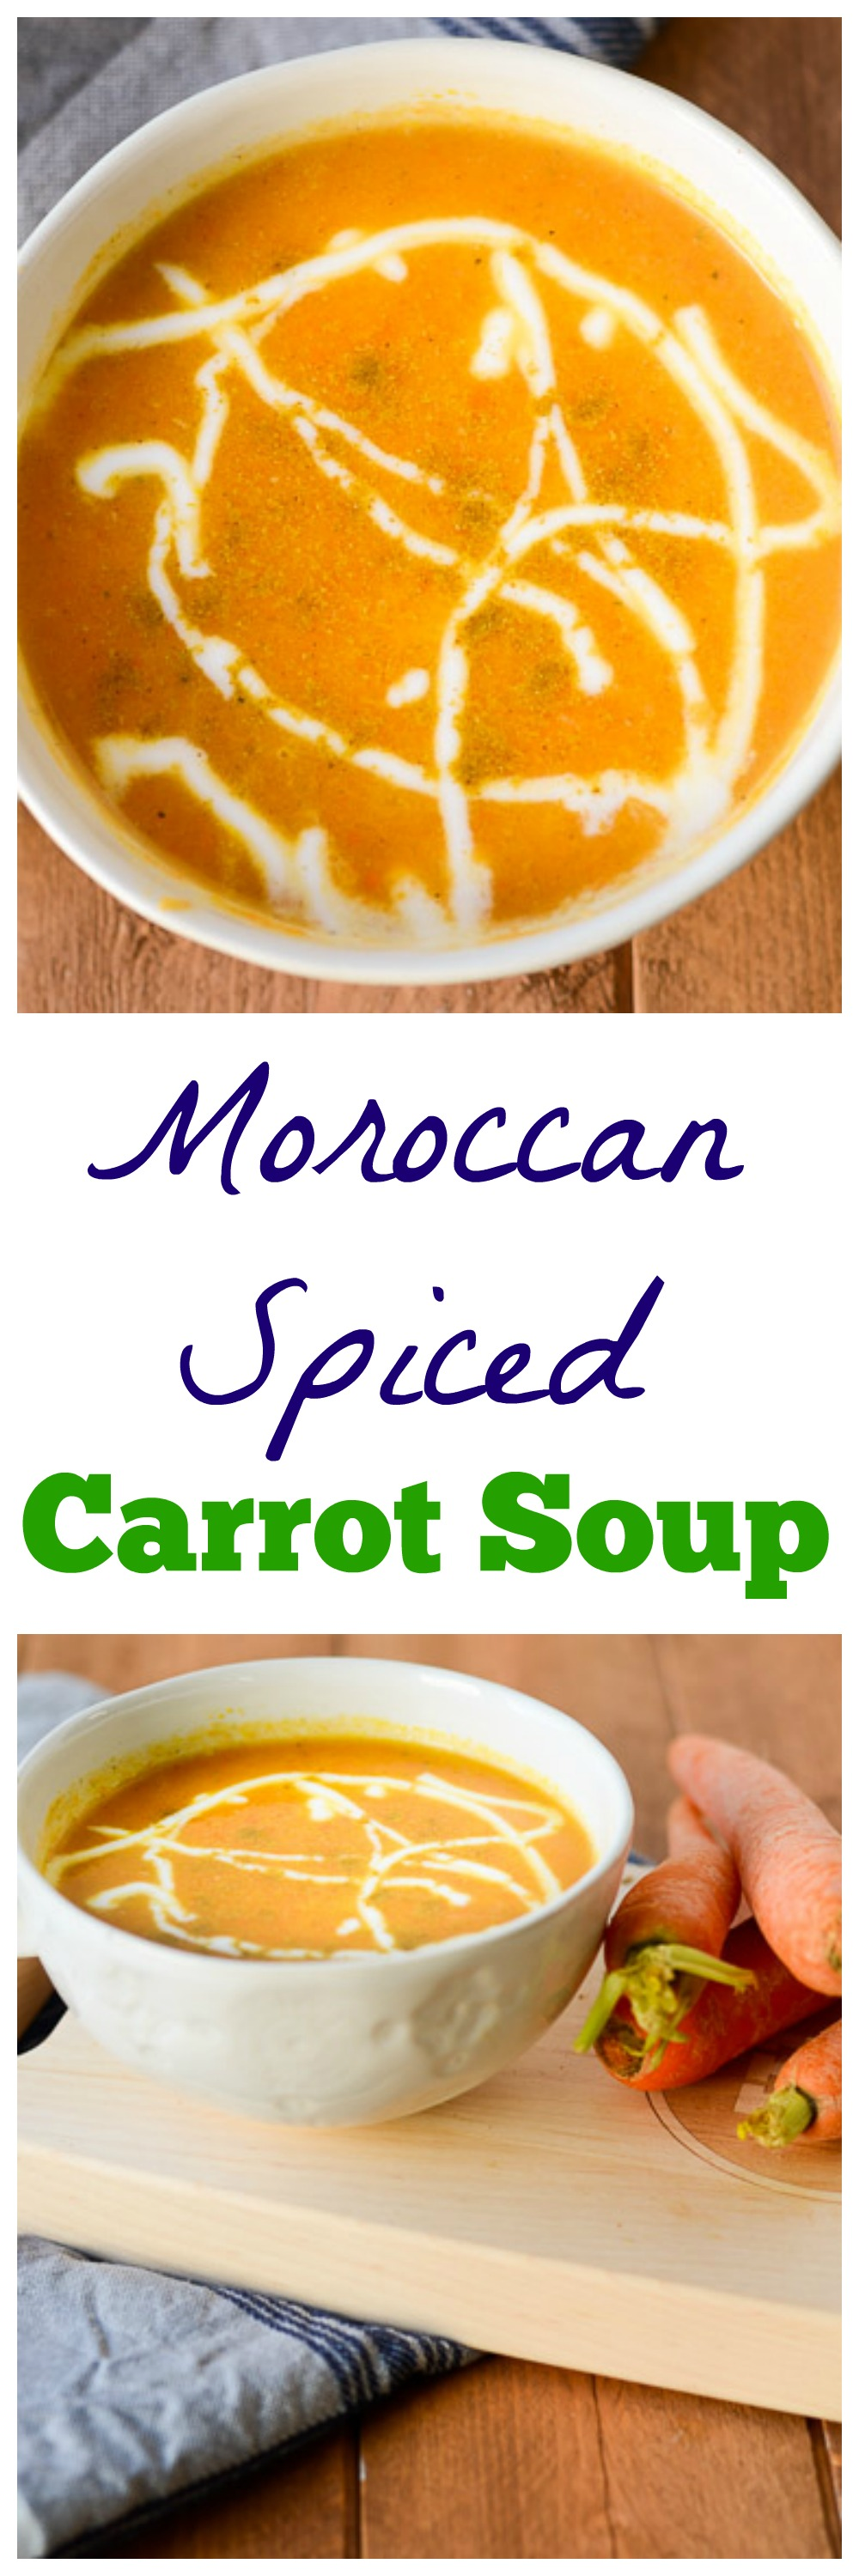 Moroccan Spiced Carrot Soup - Ready to Yumble